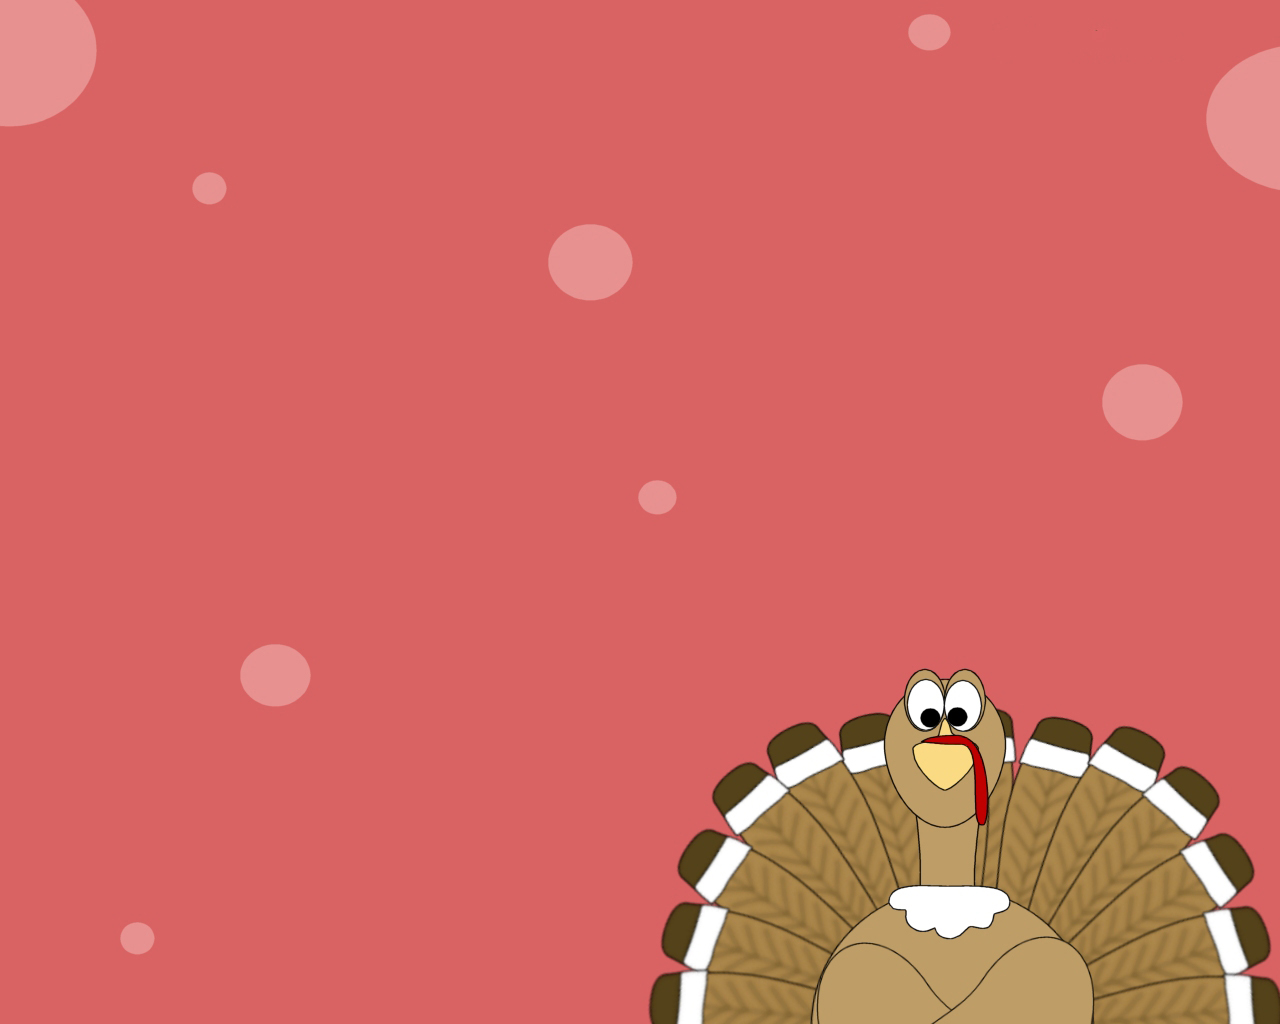 Peaceably Download Original Ny Happy Thanksgiving Free Background Desk Images Wallpaper Ny Happy Thanksgiving S Clip Art Ny Happy Thanksgiving Quotes ideas Funny Happy Thanksgiving